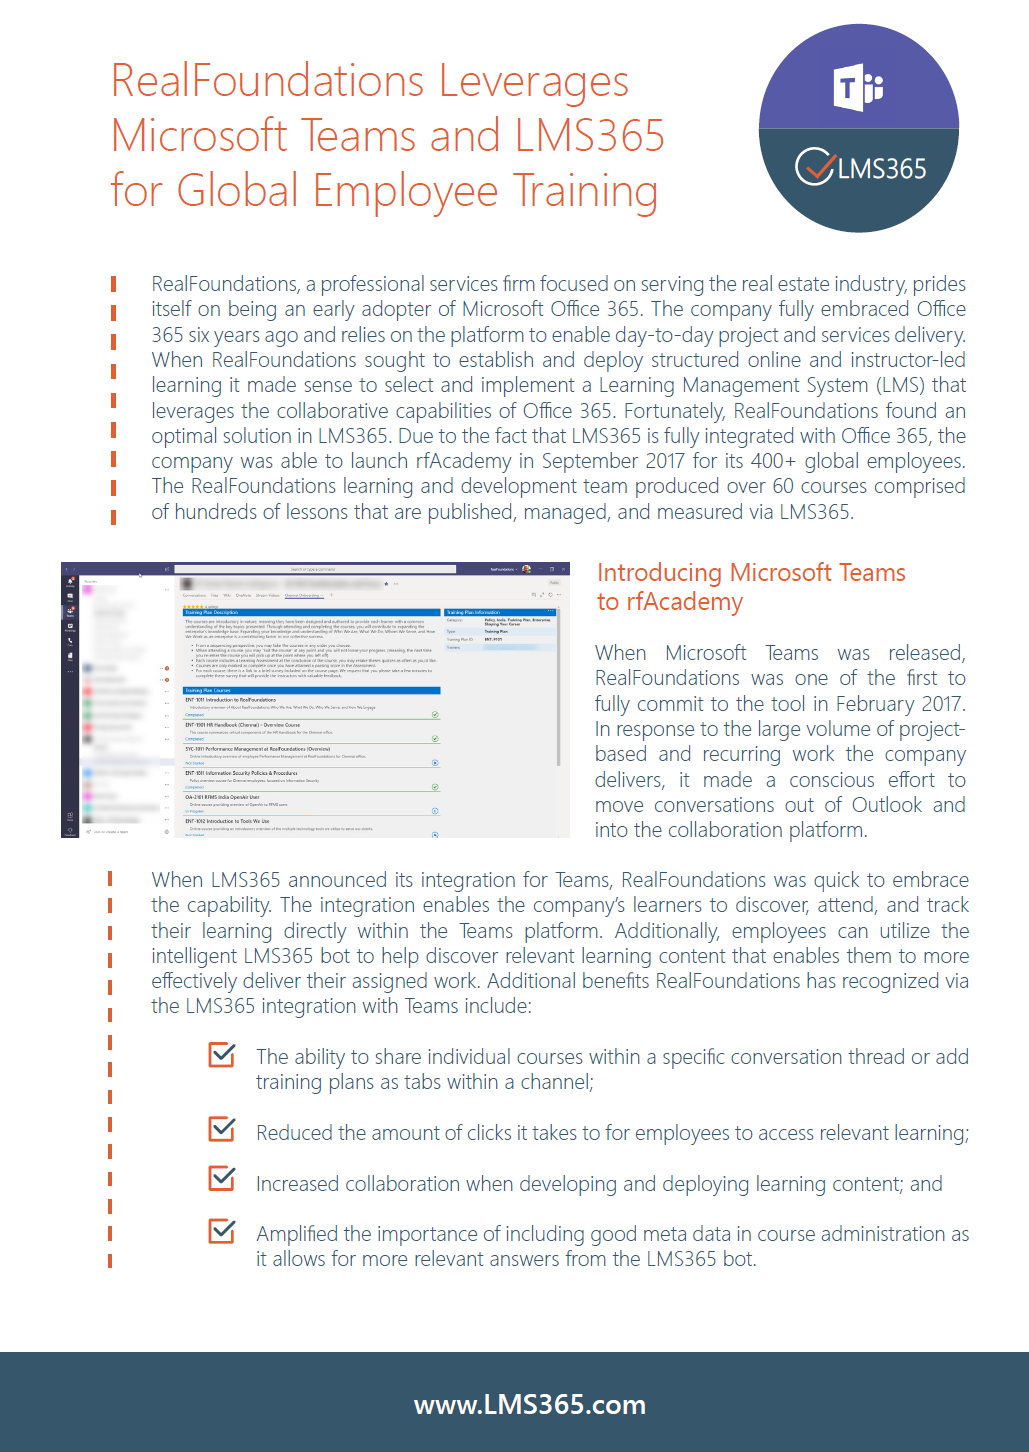 Screenshot of LMS365 Case Study focused on Microsoft Teams, featuring RealFoundations